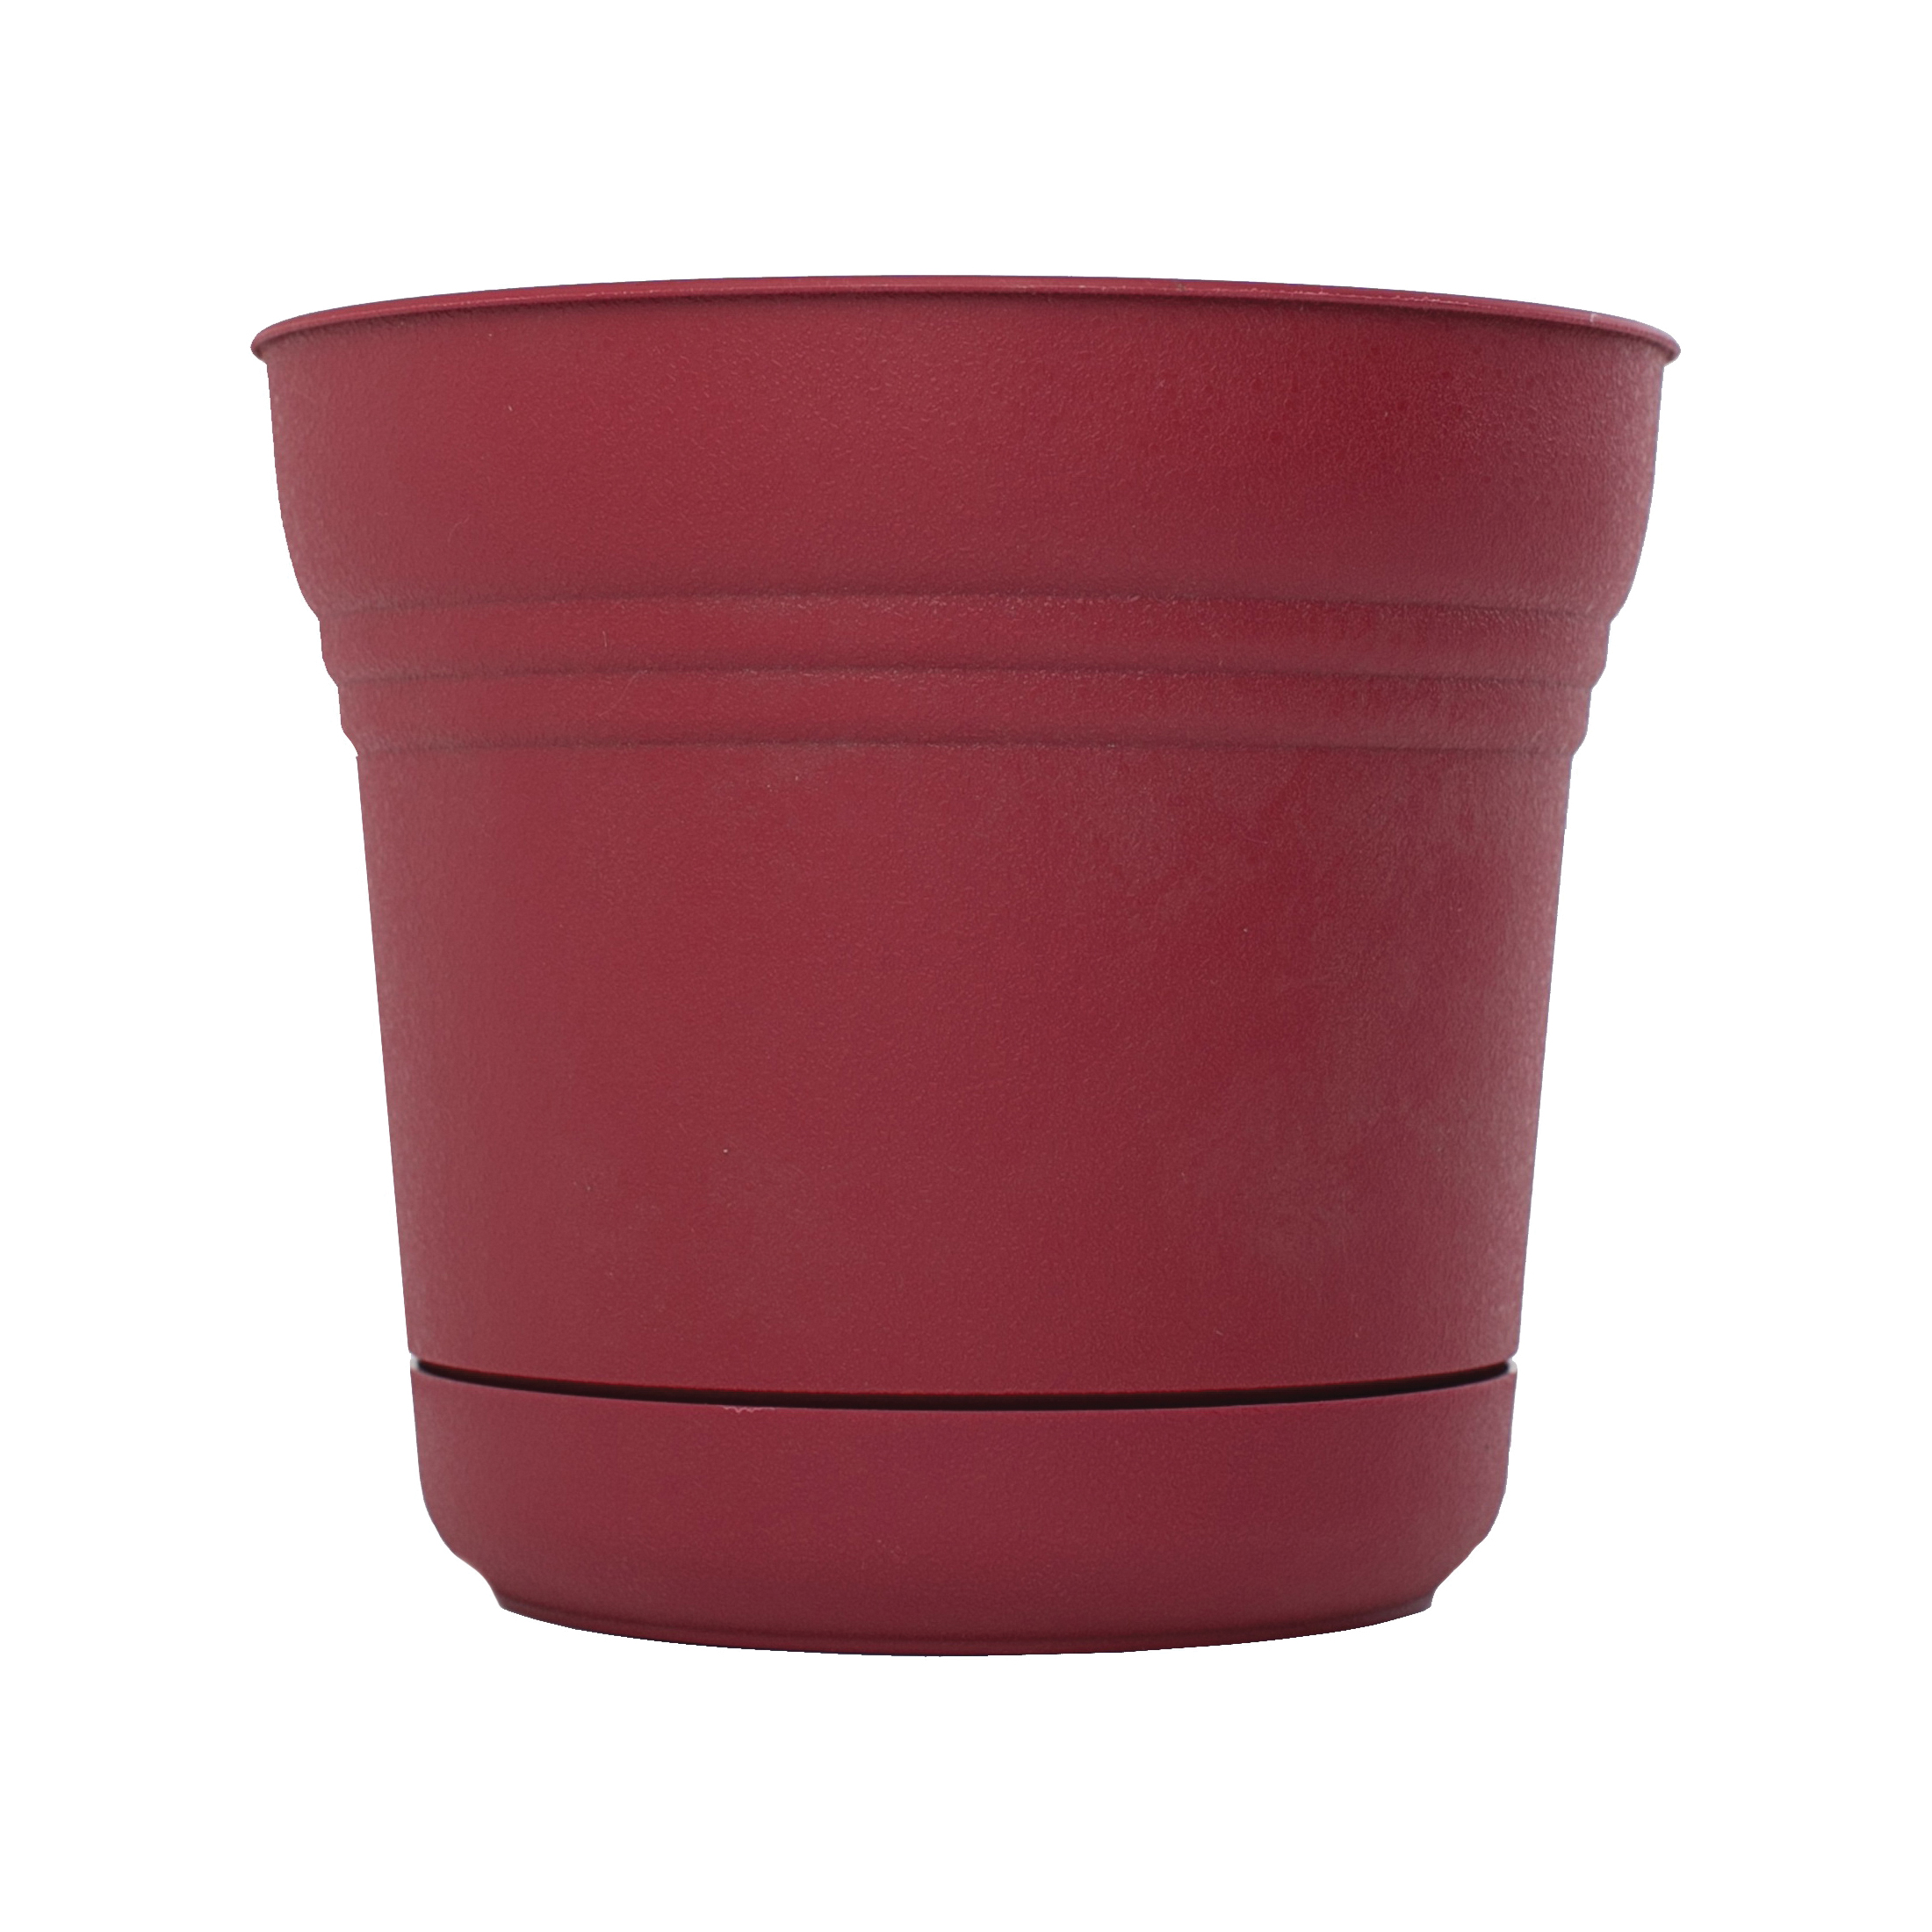 Picture of Bloem Saturn SP1412 Planter, 12.8 in W, Plastic, Union Red